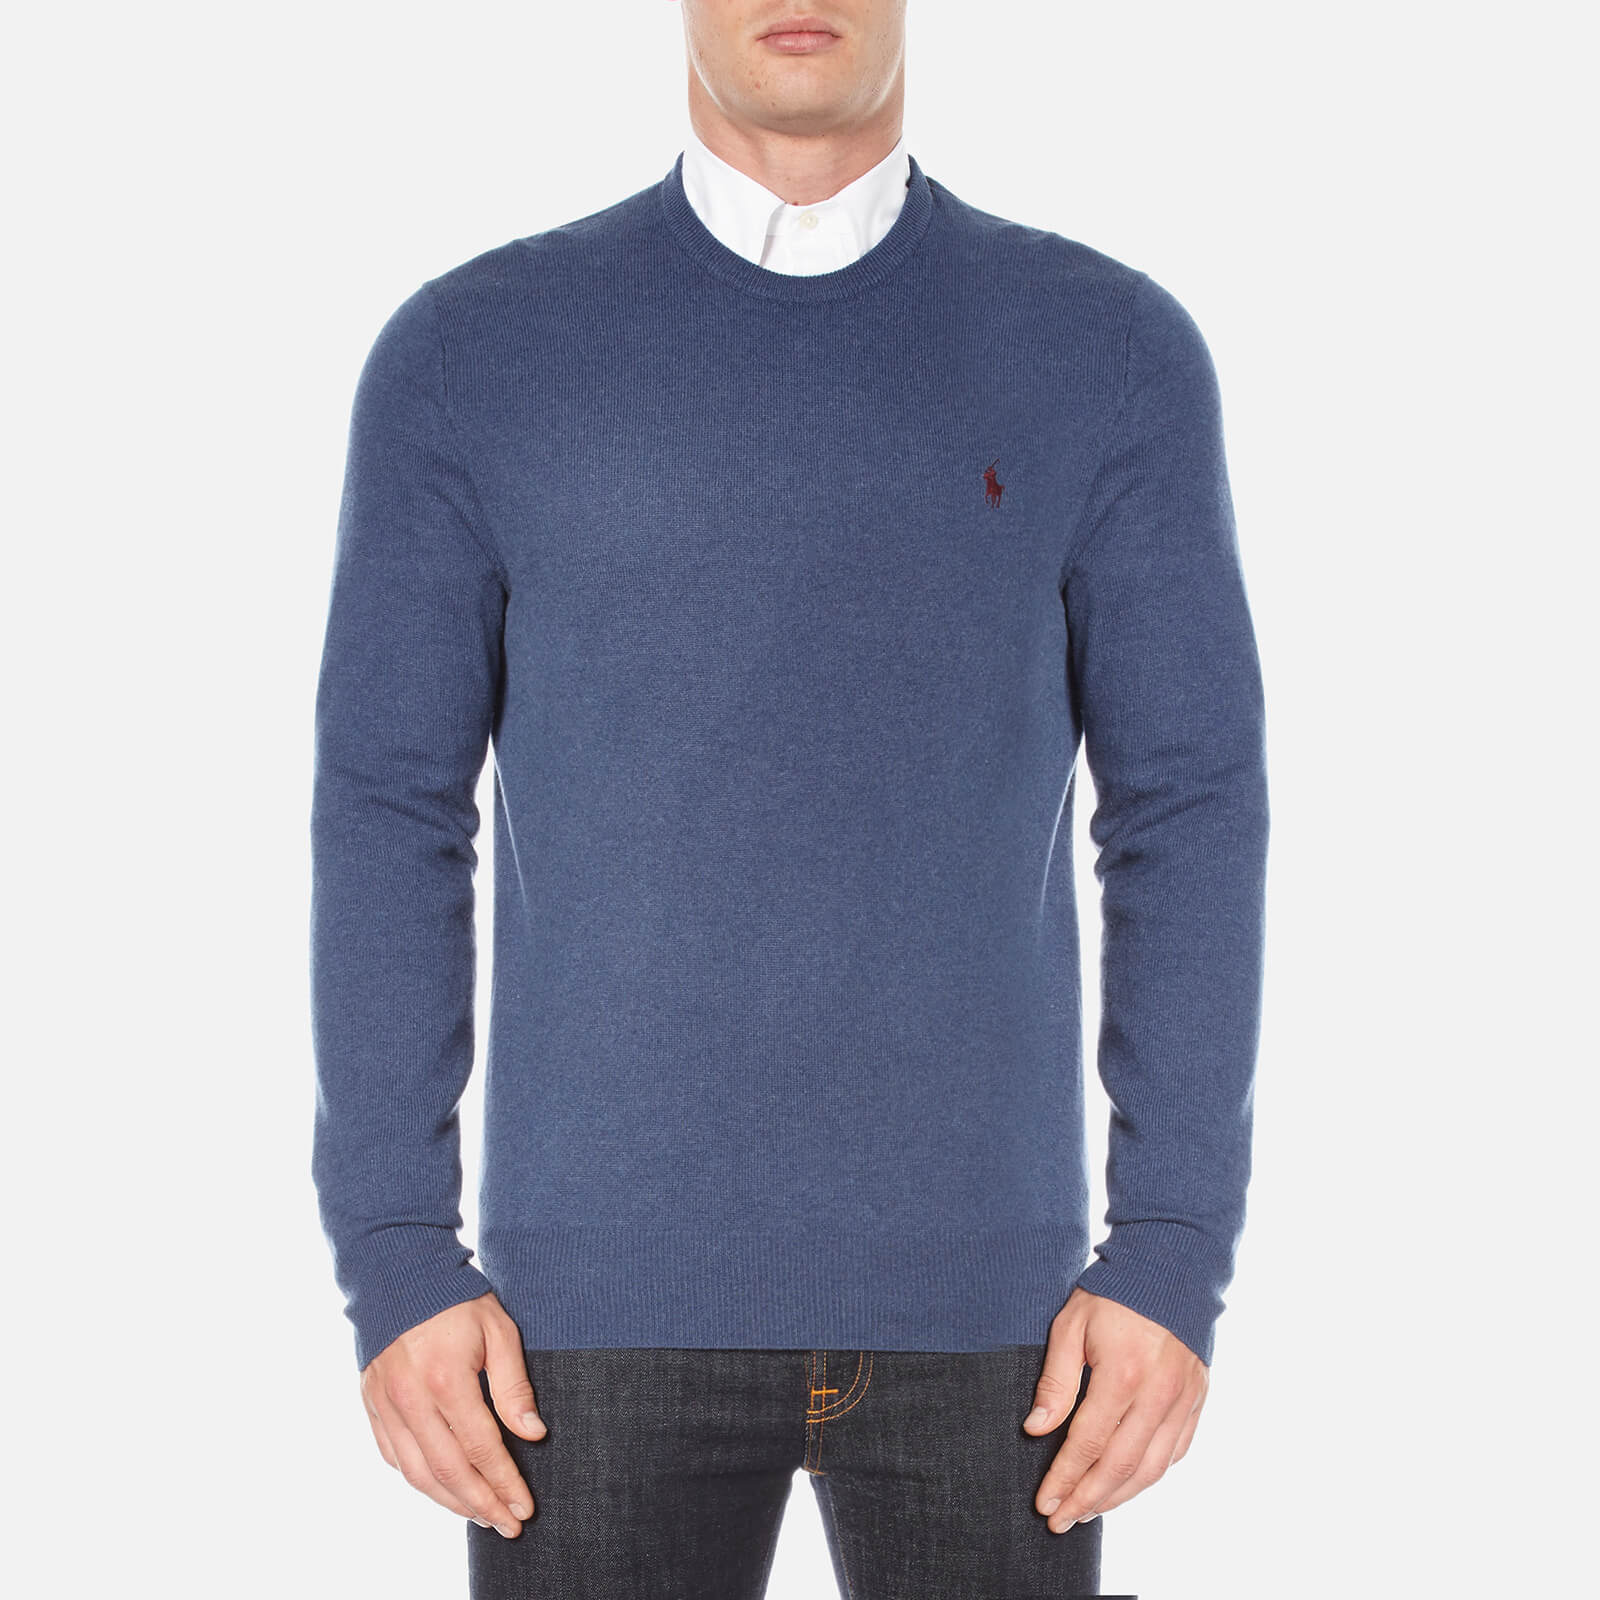 bd6e4b4aec32 Polo Ralph Lauren Men s Crew Neck Merino Knitted Jumper - Shale Blue  Heather - Free UK Delivery over £50